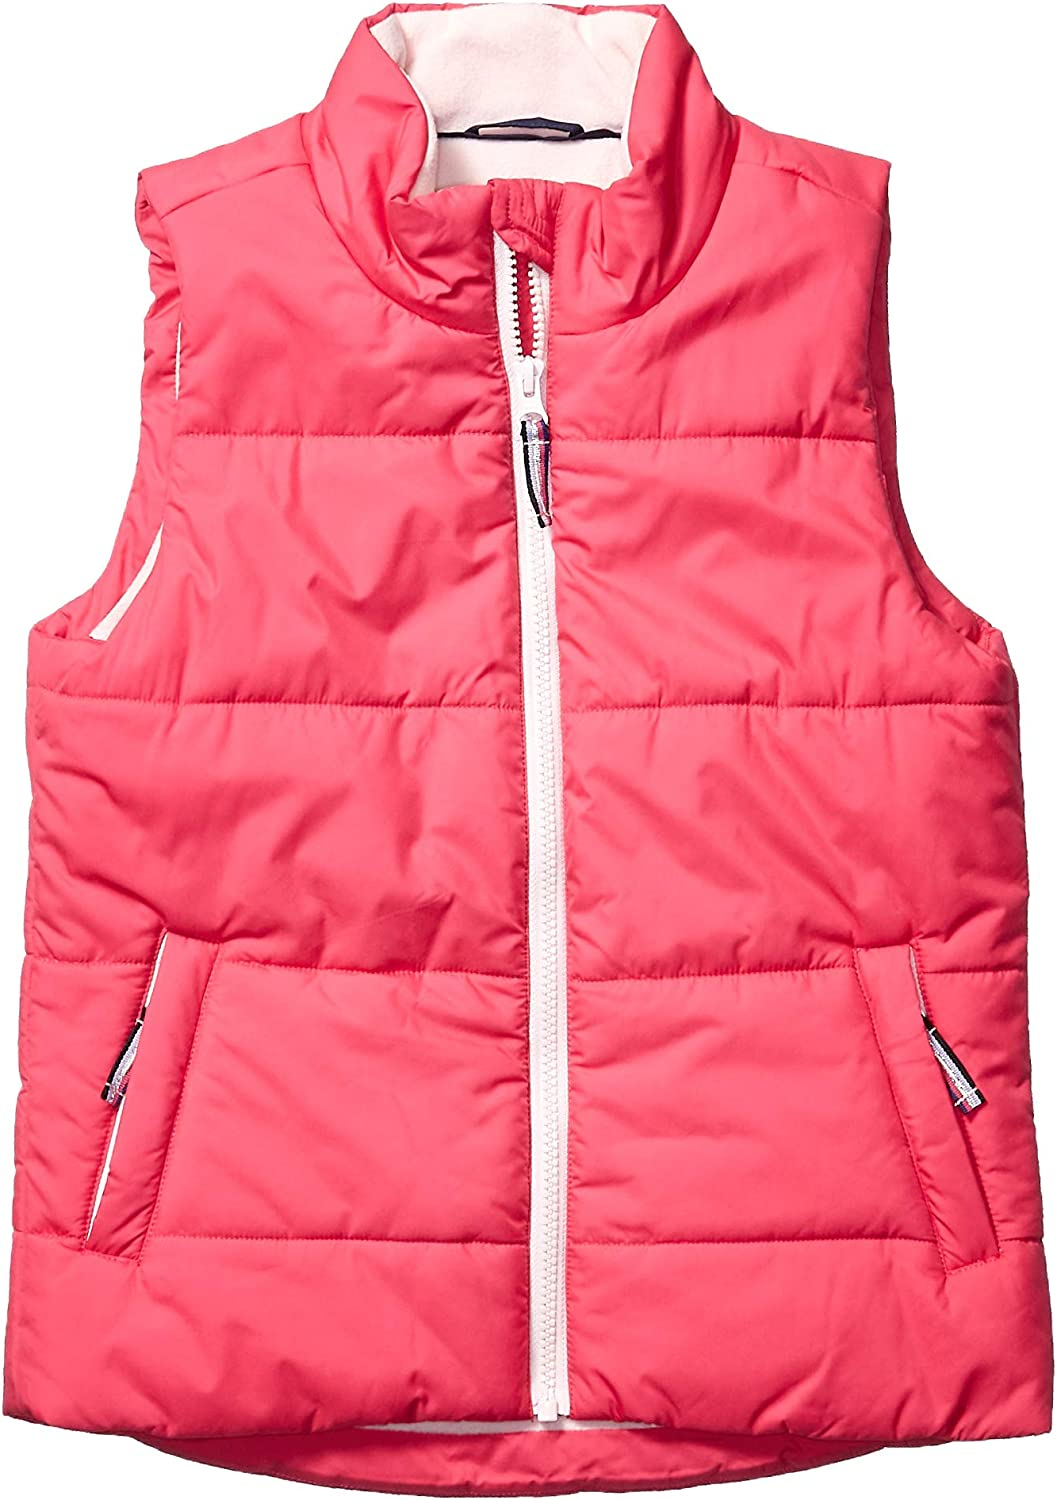 Essentials Girls Heavy-Weight Puffer Vest